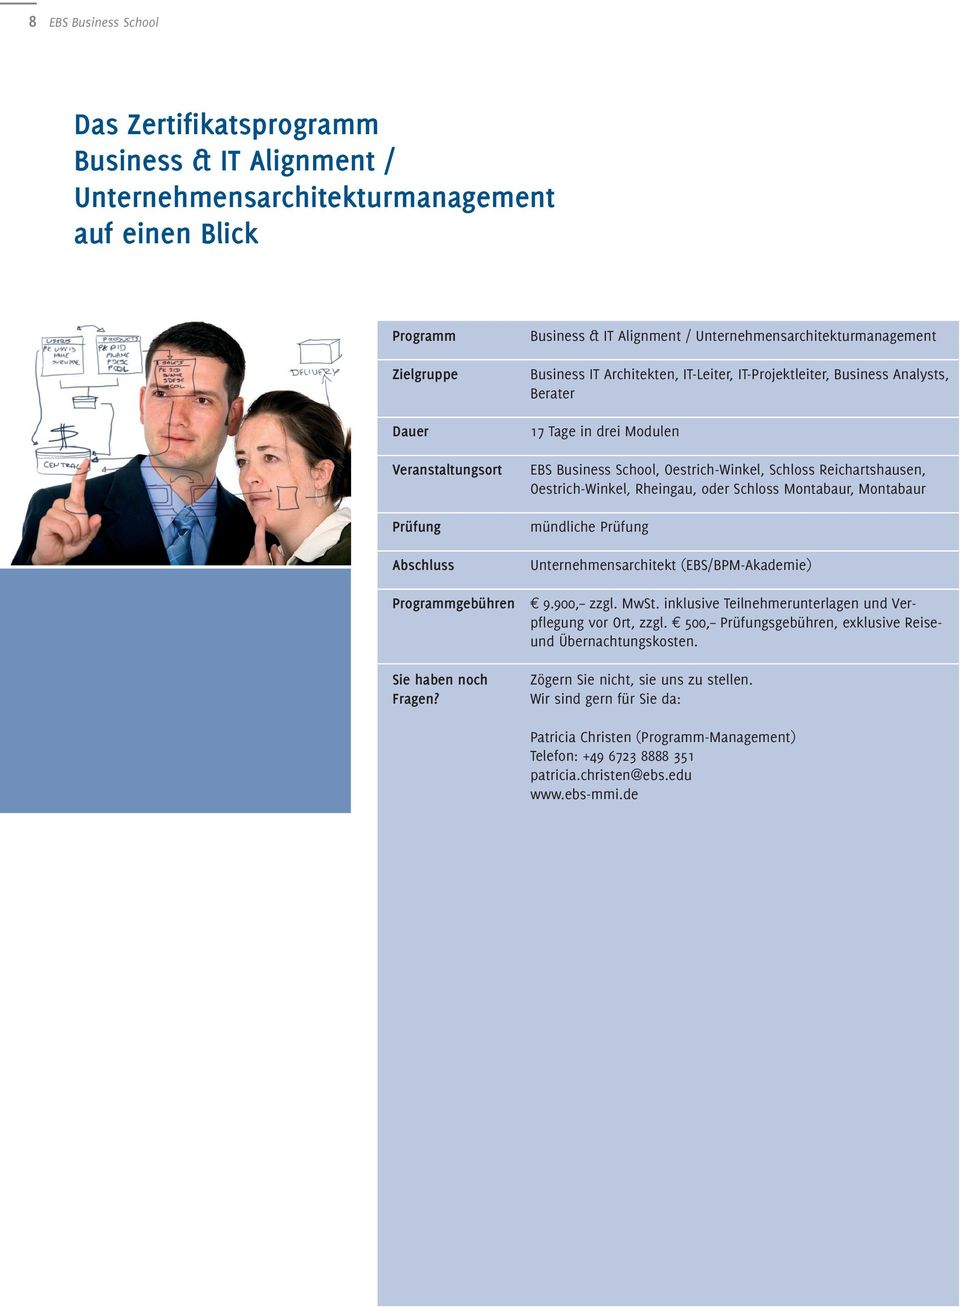 Business & IT Alignment / Unternehmensarchitekturmanagement Business IT Architekten, IT-Leiter, IT-Projektleiter, Business Analysts, Berater 17 Tage in drei Modulen EBS Business School,